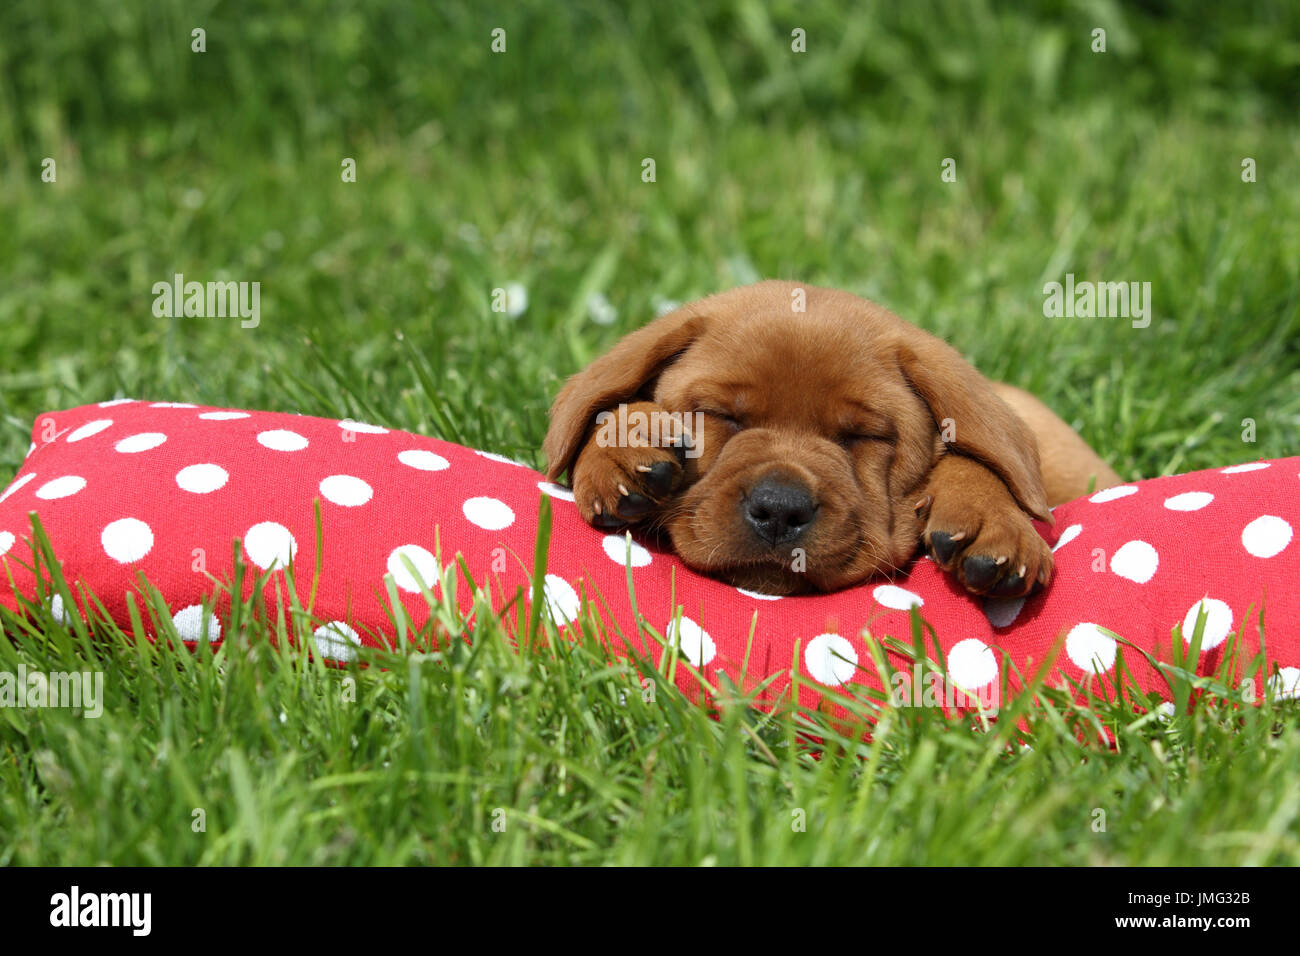 Labrador Retriever. Puppy (6 weeks old) sleeping on a red cushion with white polka dots. Germany Stock Photo